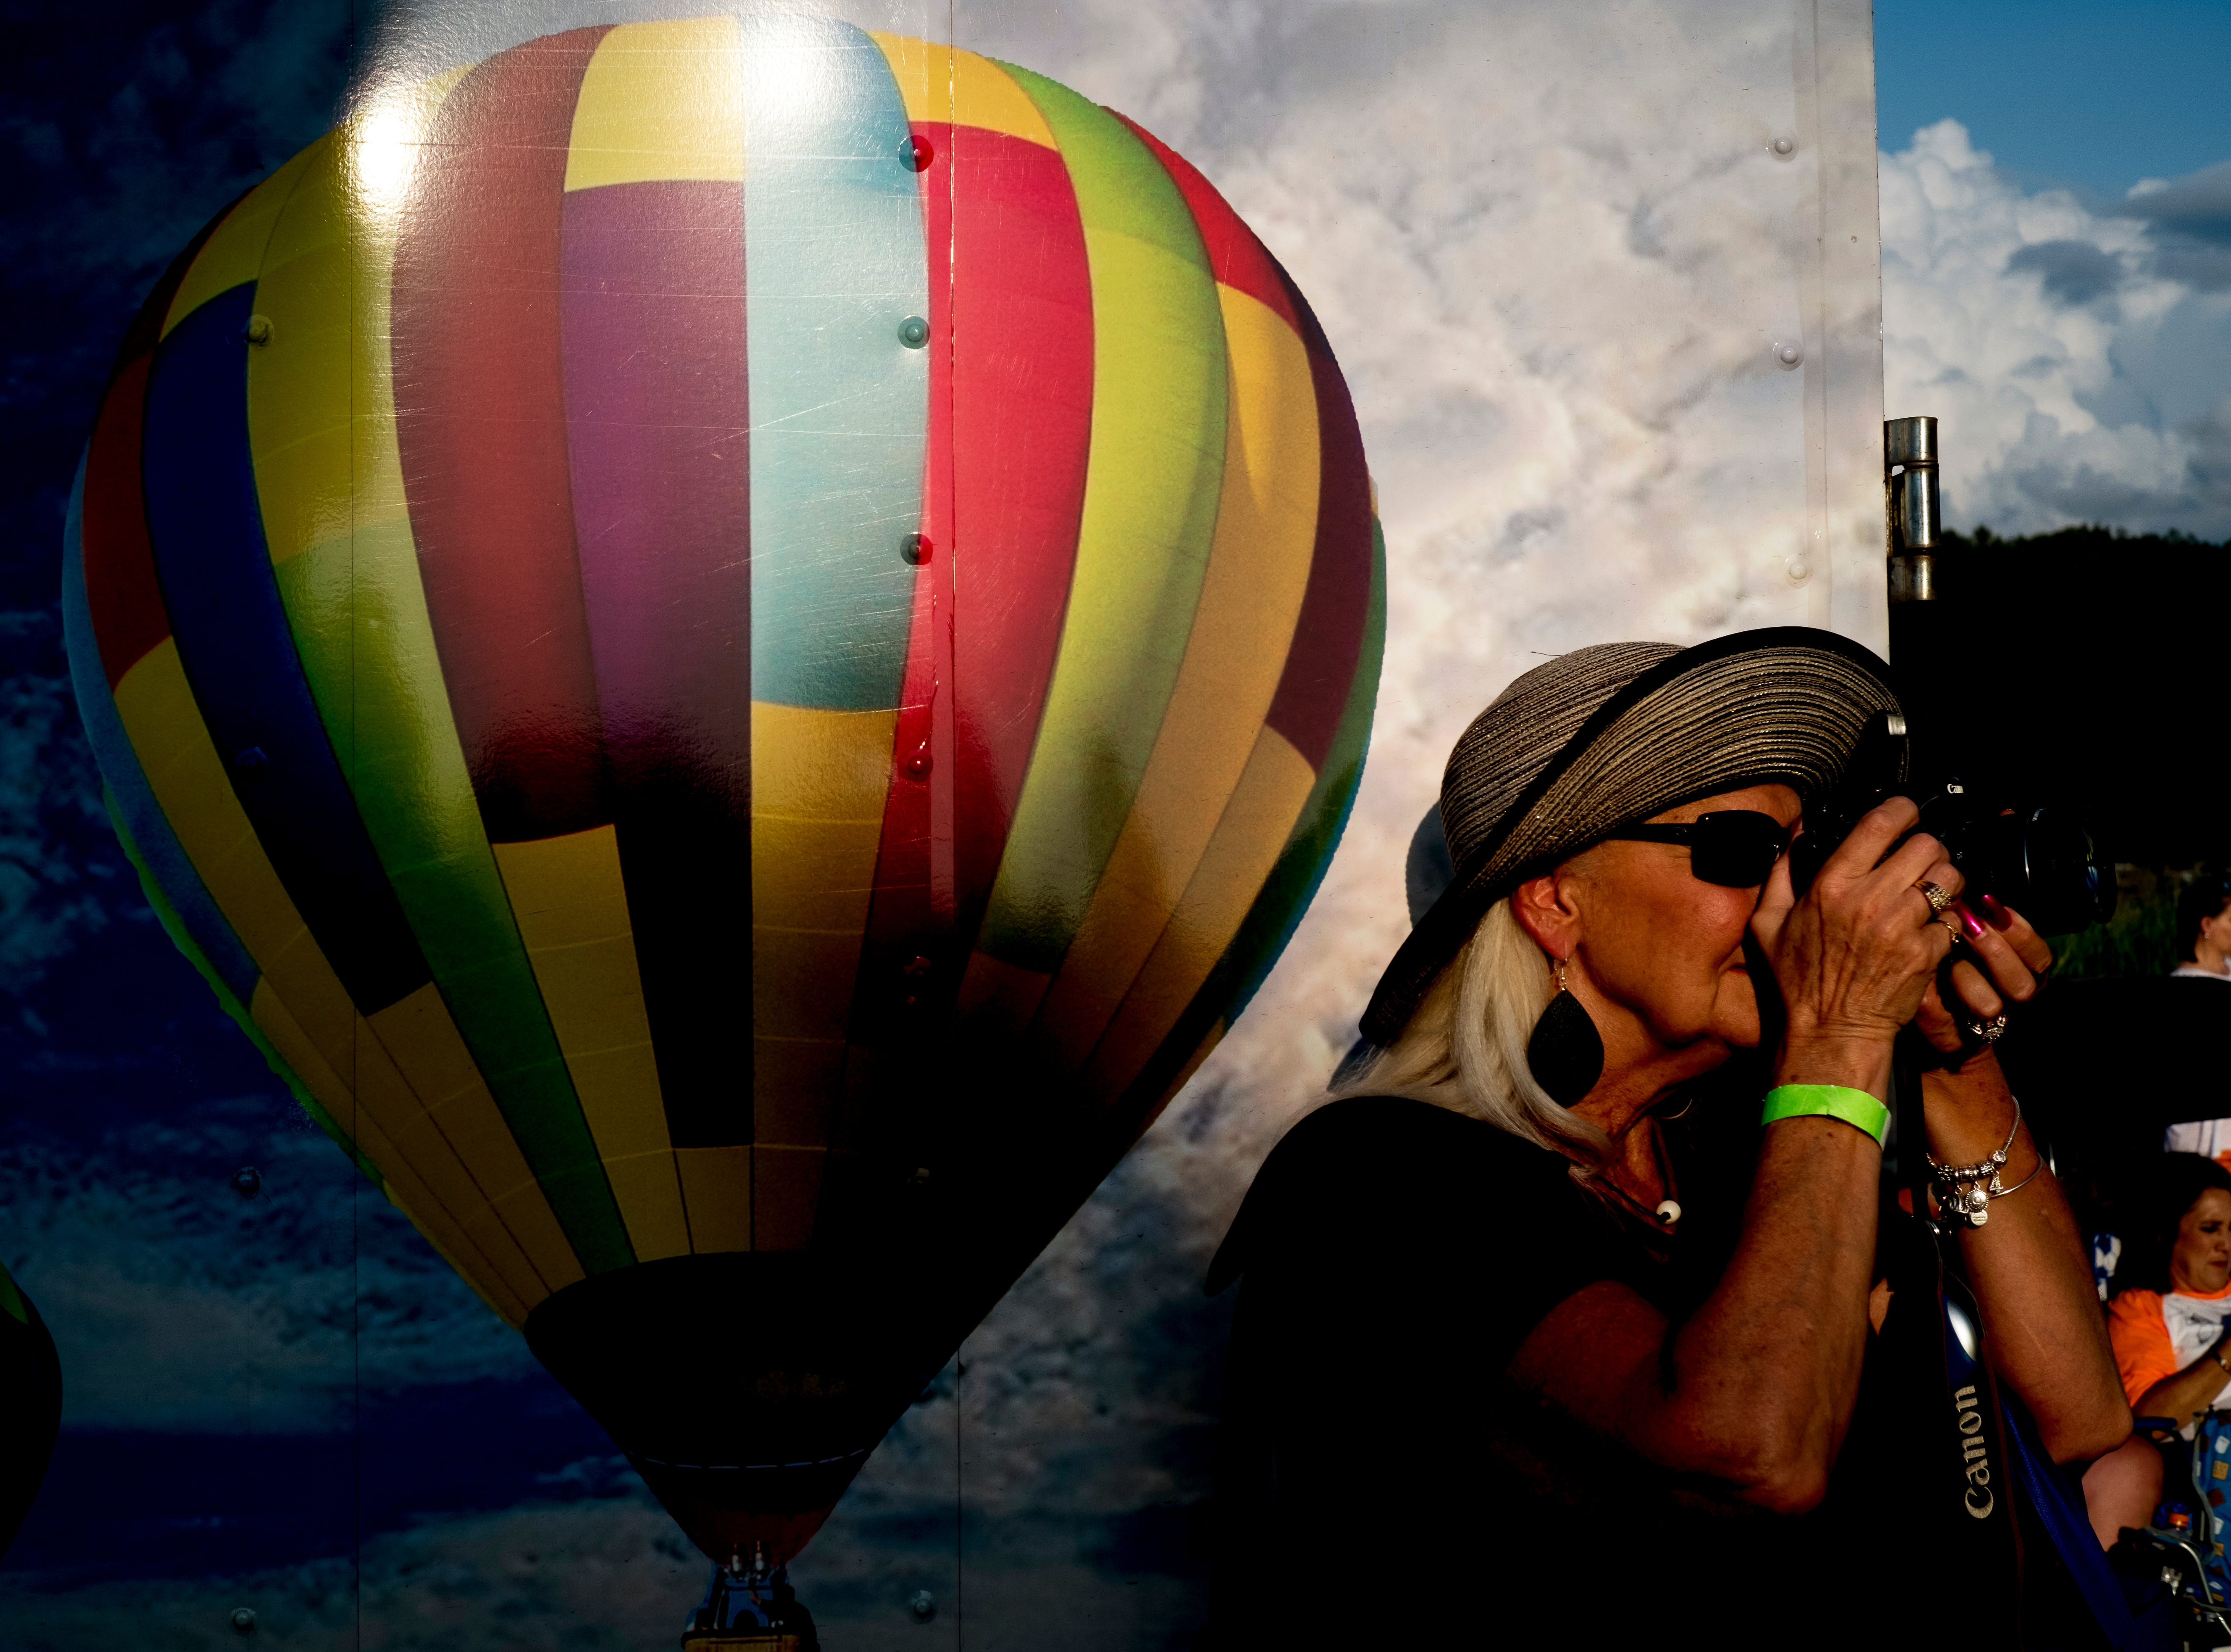 A visitor snaps a photo of the hit air balloons at the second annual Smoky Mountain Balloon Festival in Townsend, Tennessee on Saturday, August 18, 2018. The festival featured several hot air balloons, food trucks, wine tasting and live entertainment.